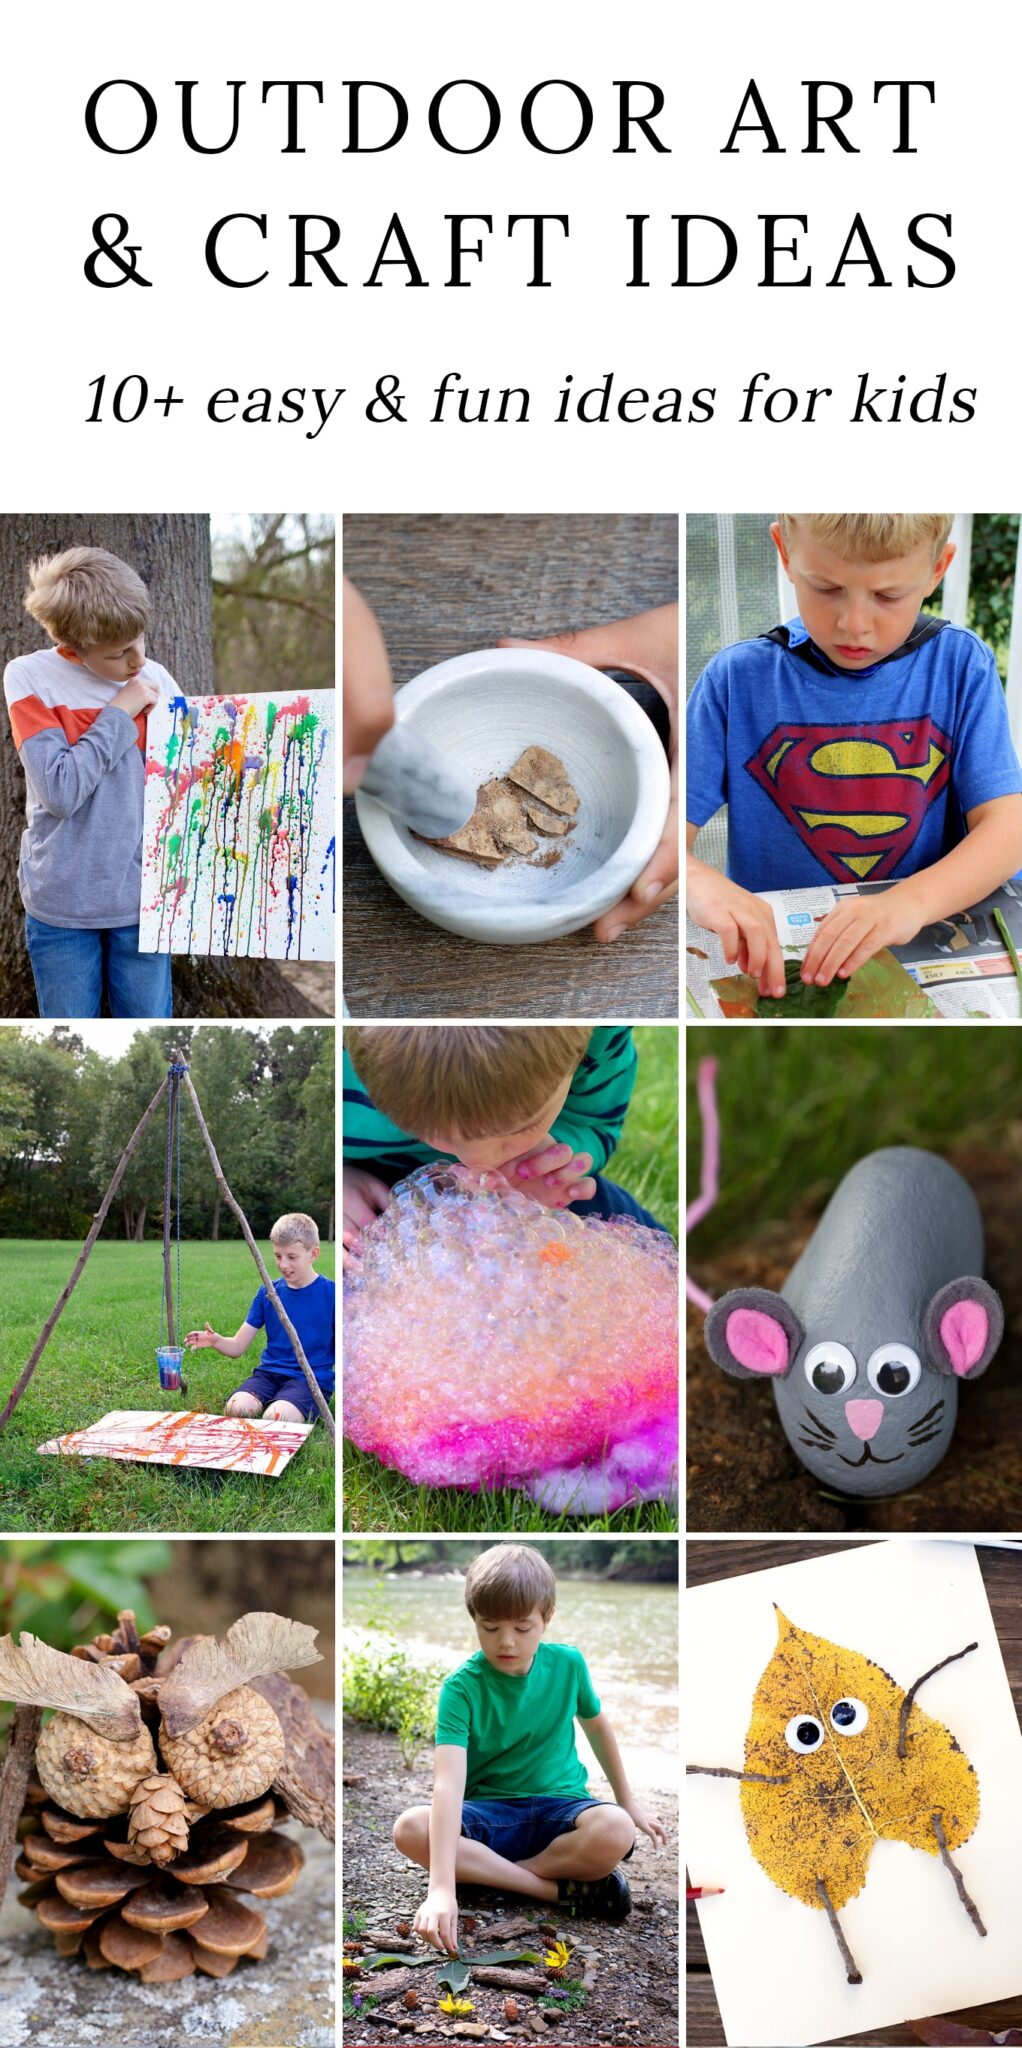 Outdoor Art and Craft Ideas for Kids